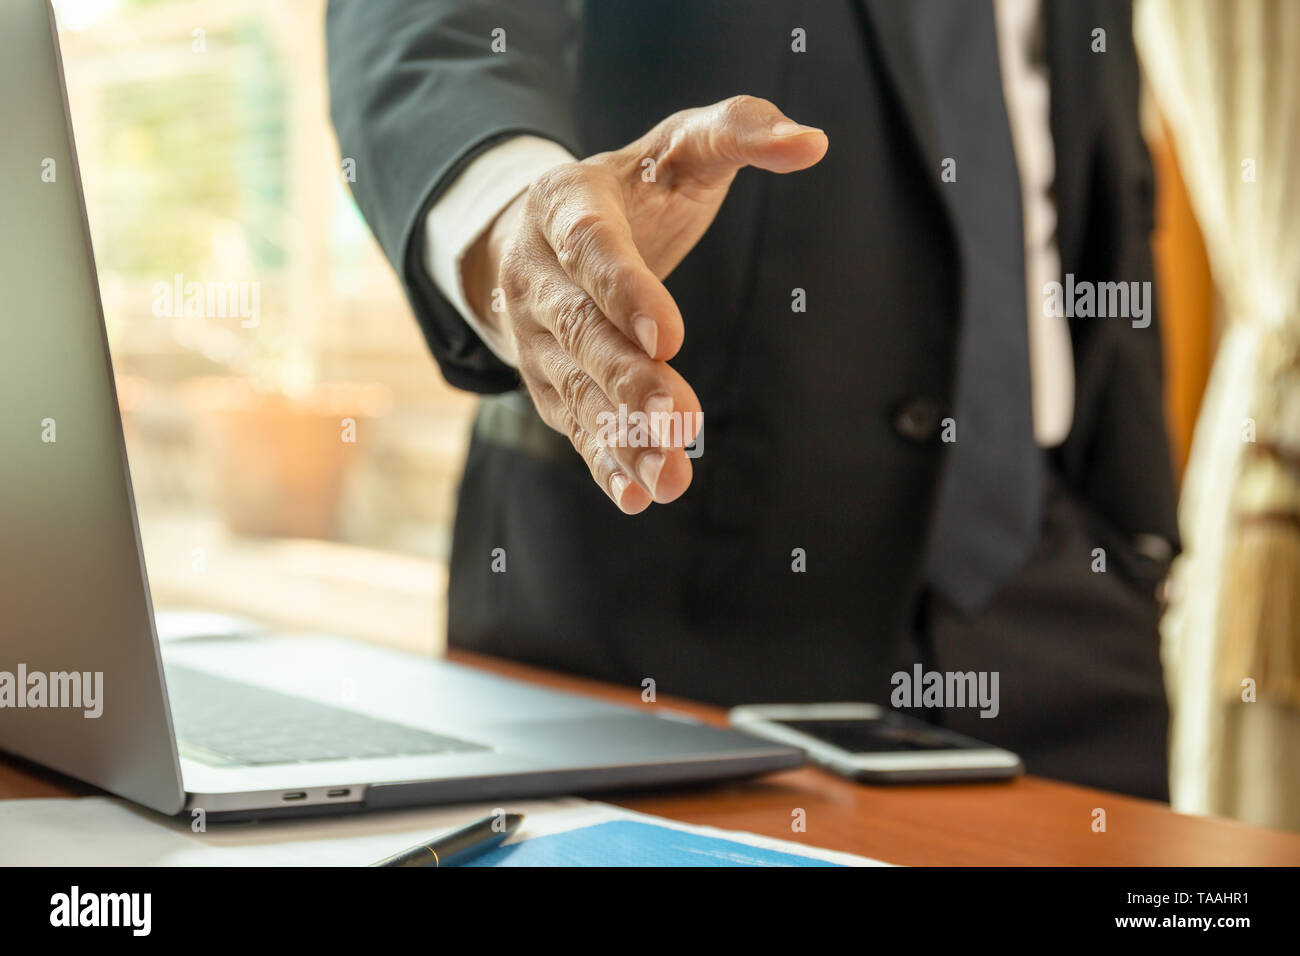 Businessman standing and reaching out hand for shaking. Stock Photo